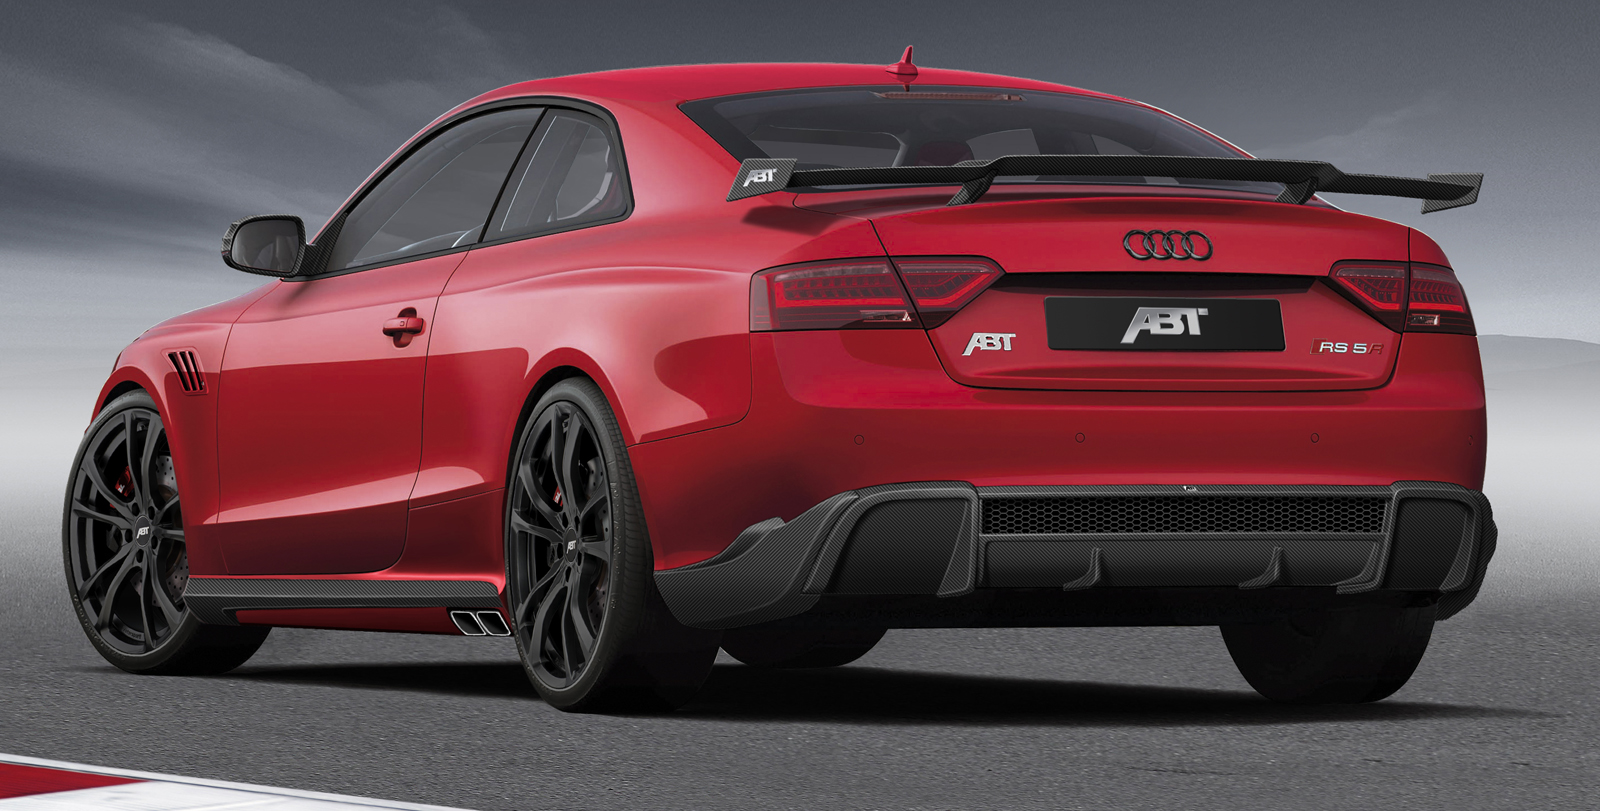 The Abt Rs5 R